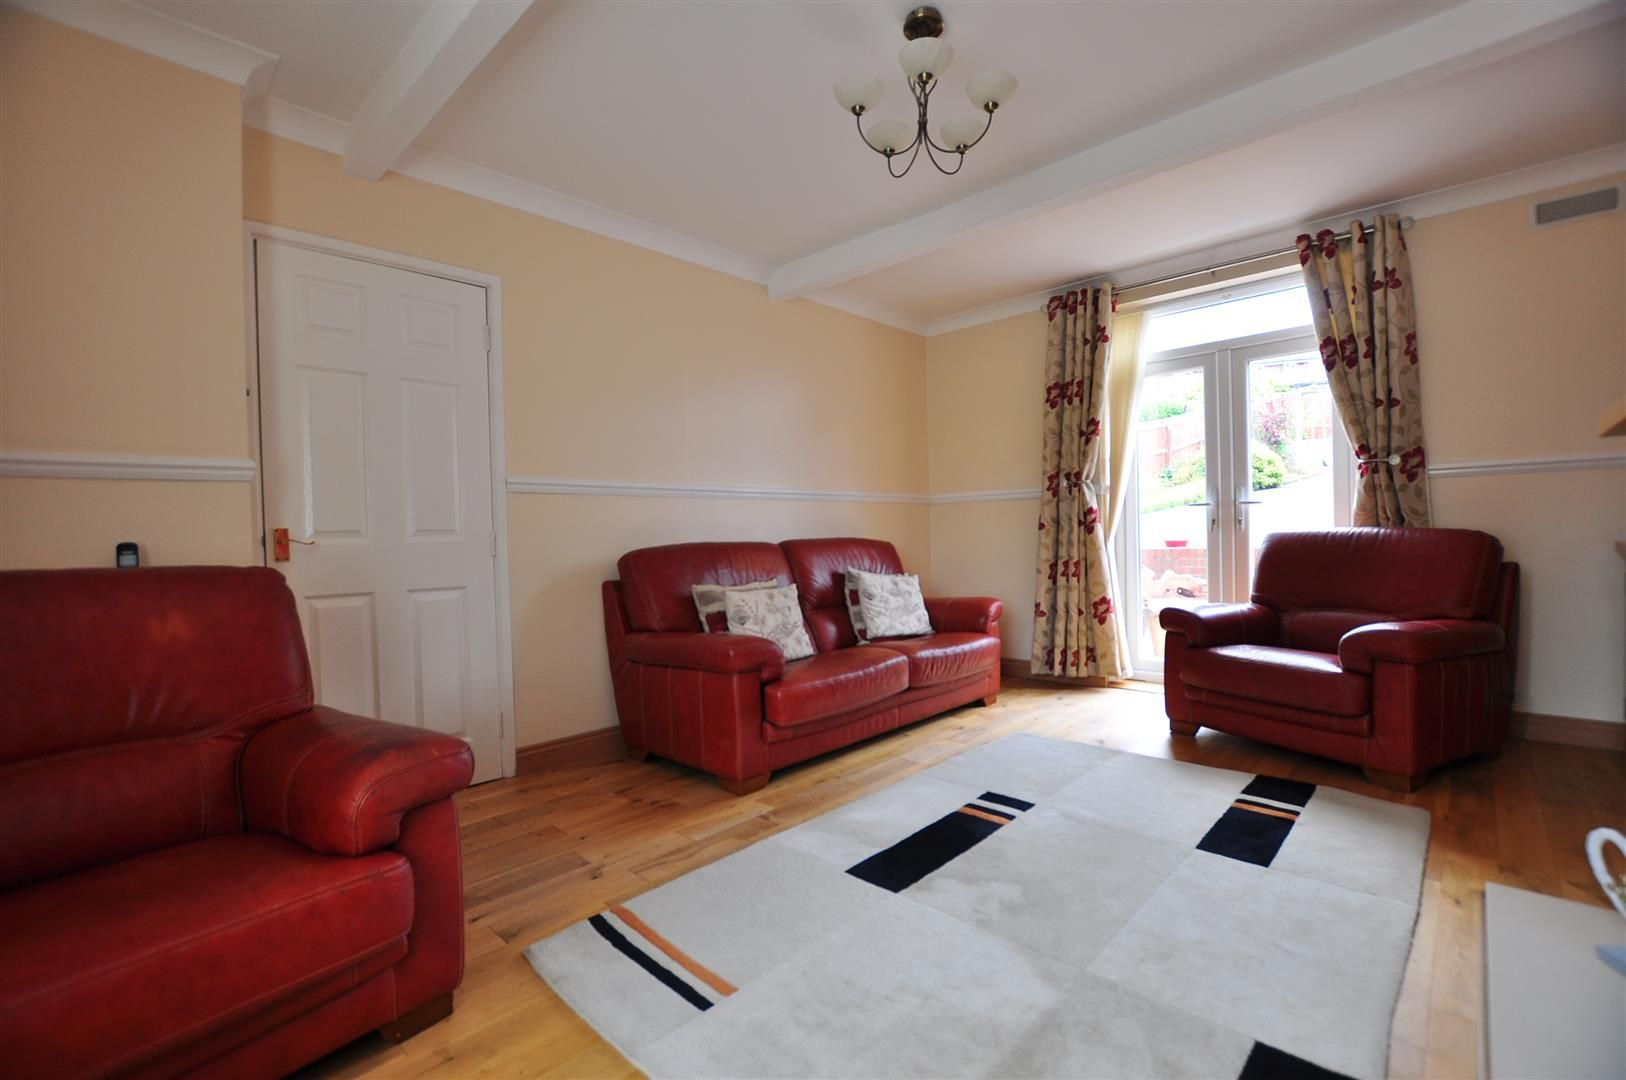 3 bed semi-detached for sale in Lower Gornal 5